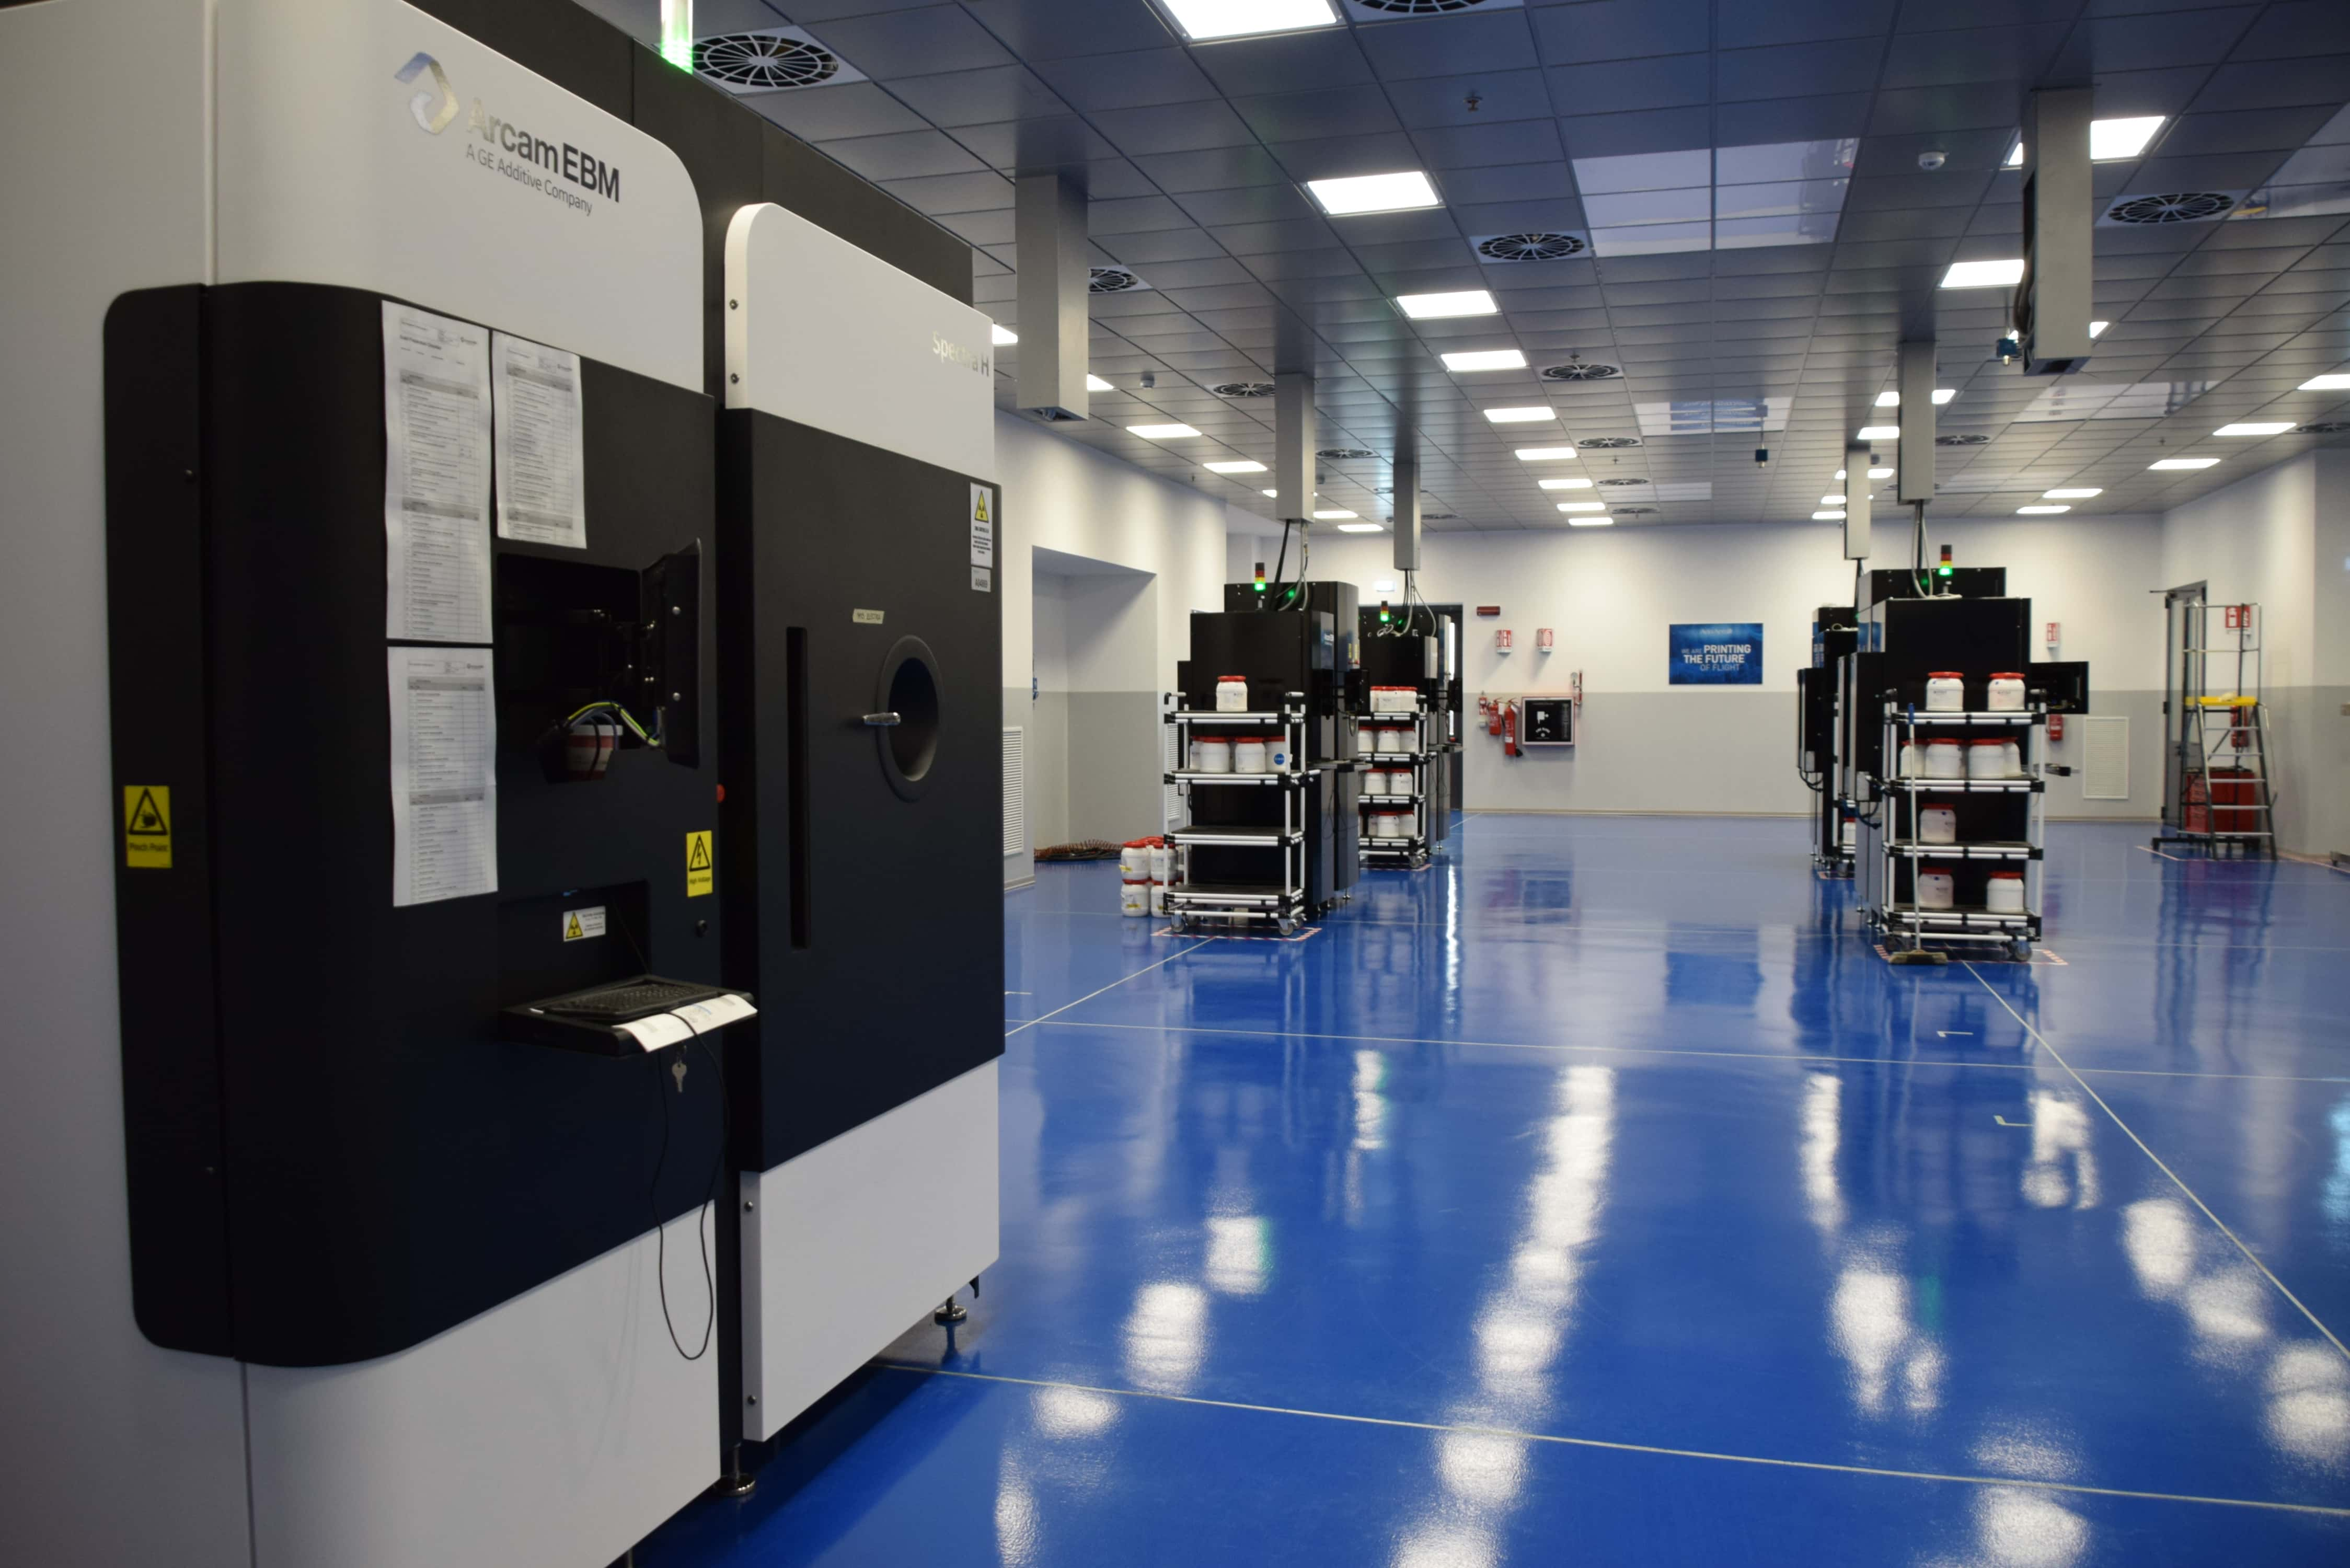 Avio Aero, a GE Aviation company, prints some of the GE9X components on Arcam machines at its additive manufacturing factory in Cameri, Italy. Image credit: Avio Aero.